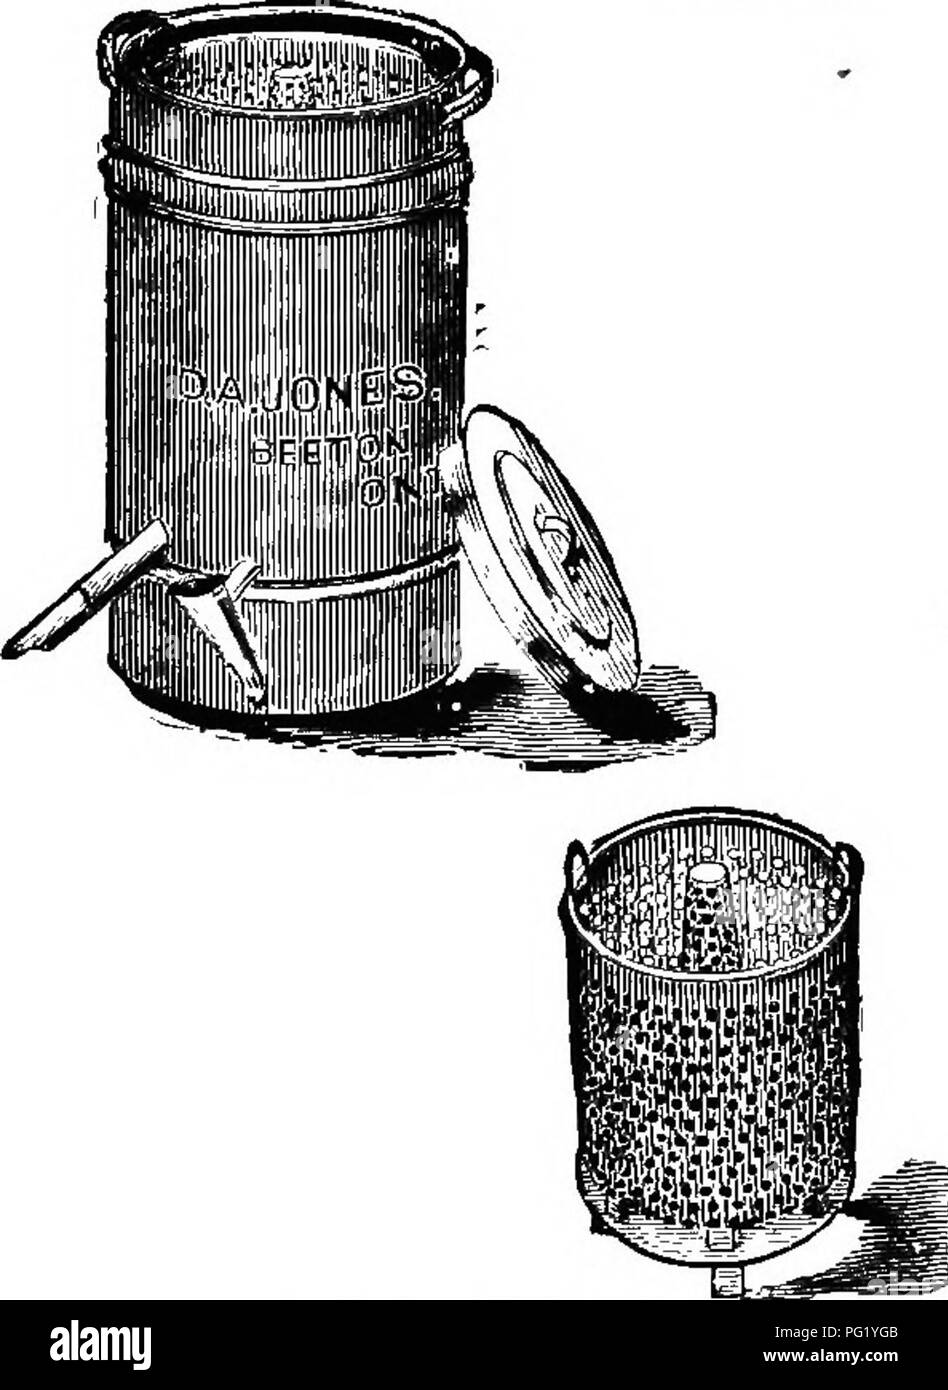 . The bee-keeper's guide; or, Manual of the apiary. Bees. 368 THK bbk-kbbpbr's guidb ; But as wax is to become so important, and as the above methods are slow, wasteful, and apt to give a poor quality of wax, specialists, and even amateurs who keep ten or twenty colonies of bees, may well procure a wax-extractor (Fig. 180). This is also a foreign invention, the first being made by Prof. Gerster, of Berne, Switzerland. These cost from five to seven Fig. 181.. Please note that these images are extracted from scanned page images that may have been digitally enhanced for readability - coloration a - Stock Image